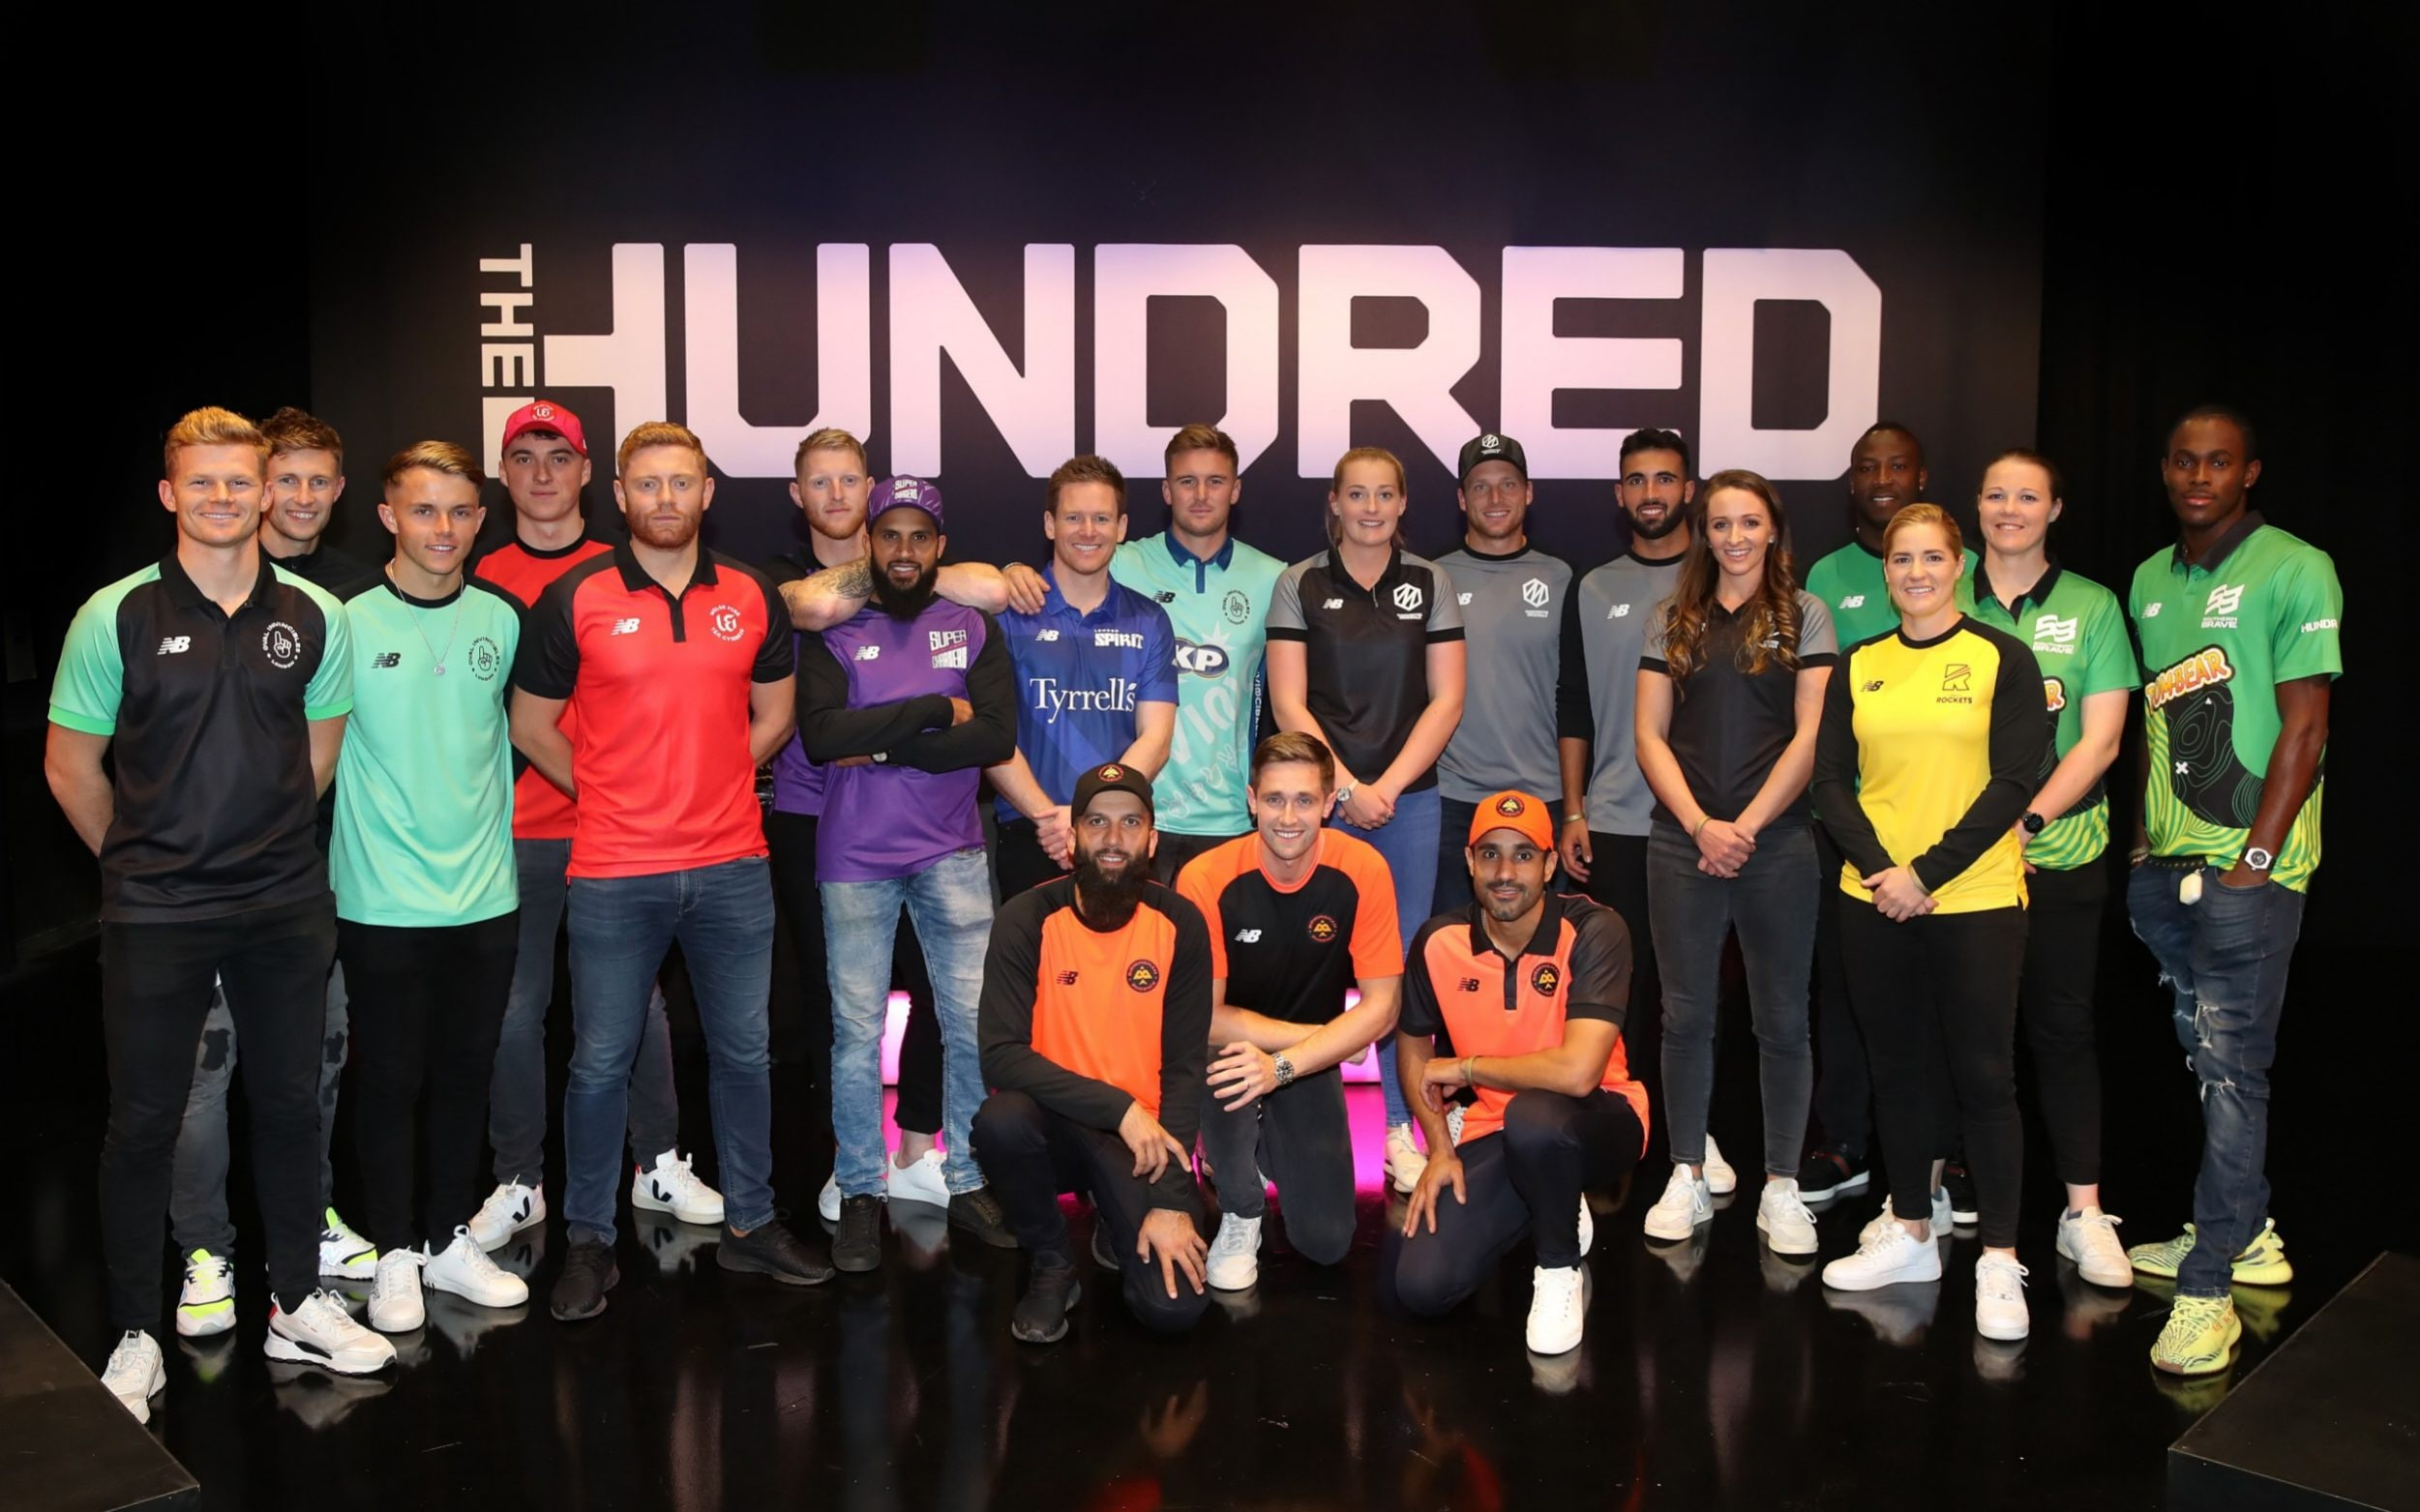 Mega Tournament by ECB's The Hundred, to commence from 21st June